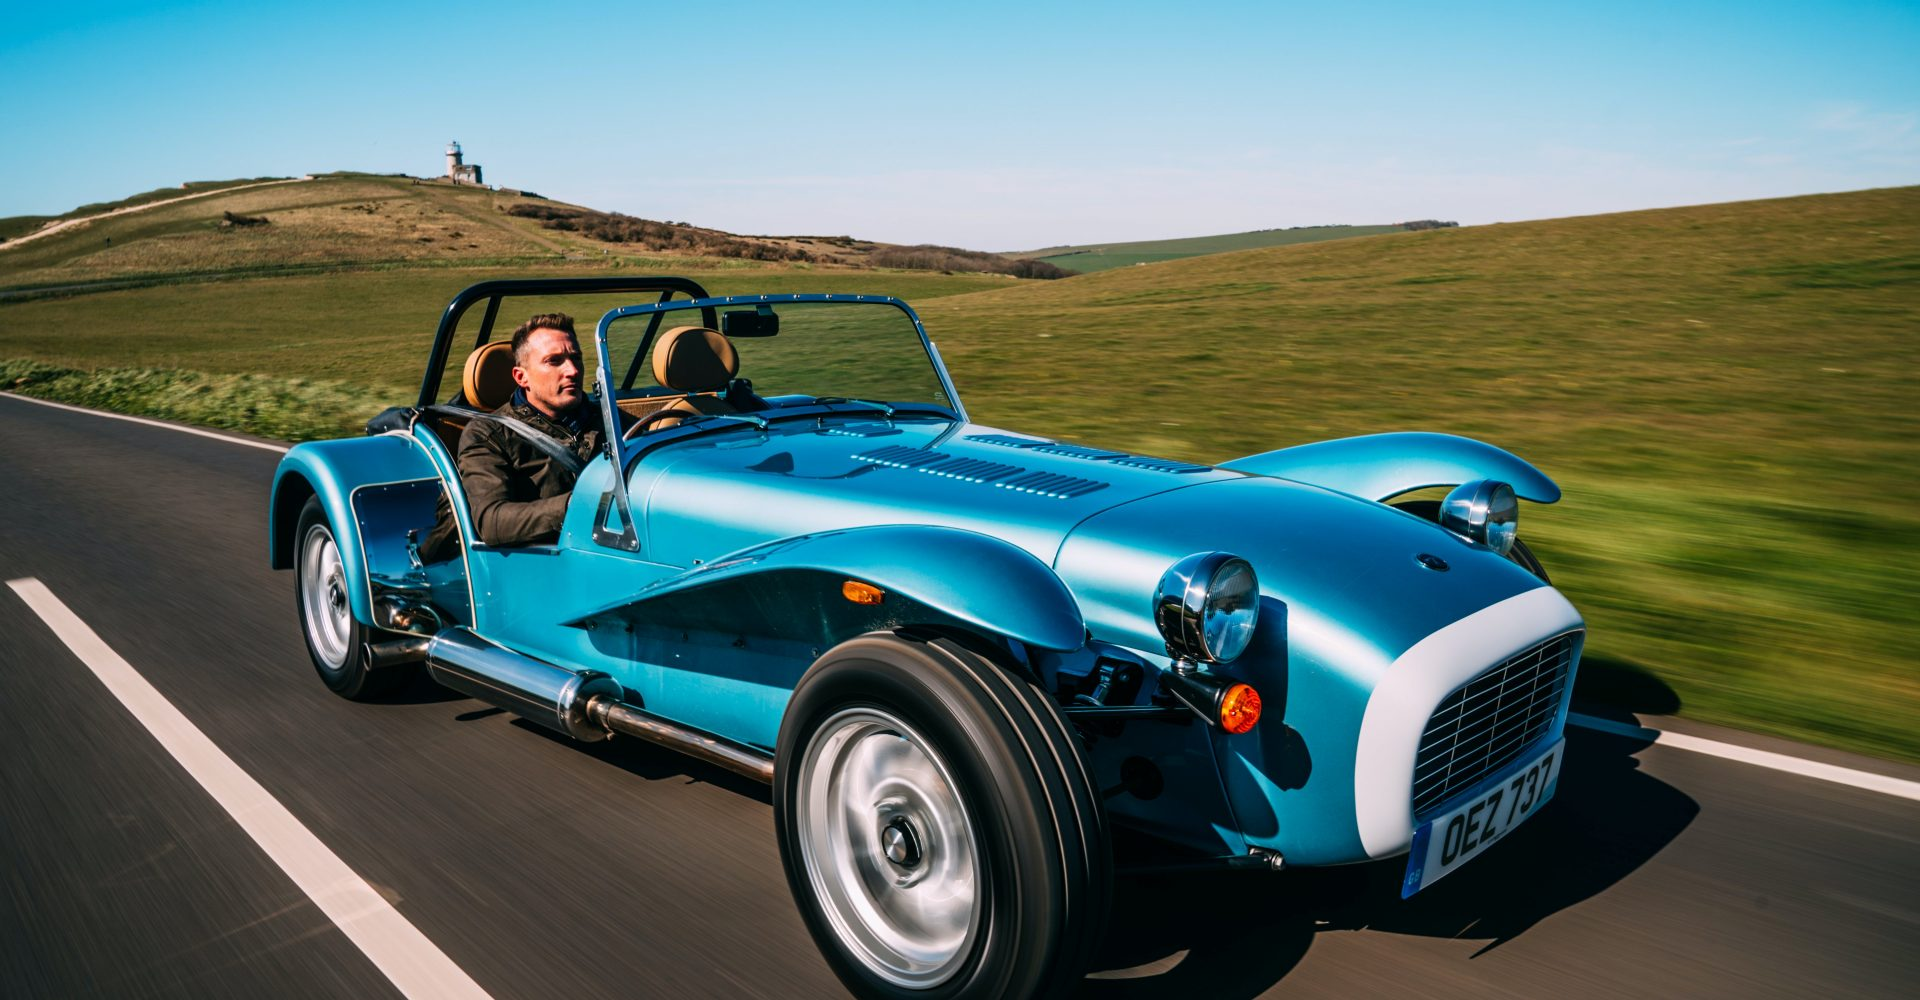 First Drive: The Caterham Super Seven 1600 harks back to a golden age of motoring